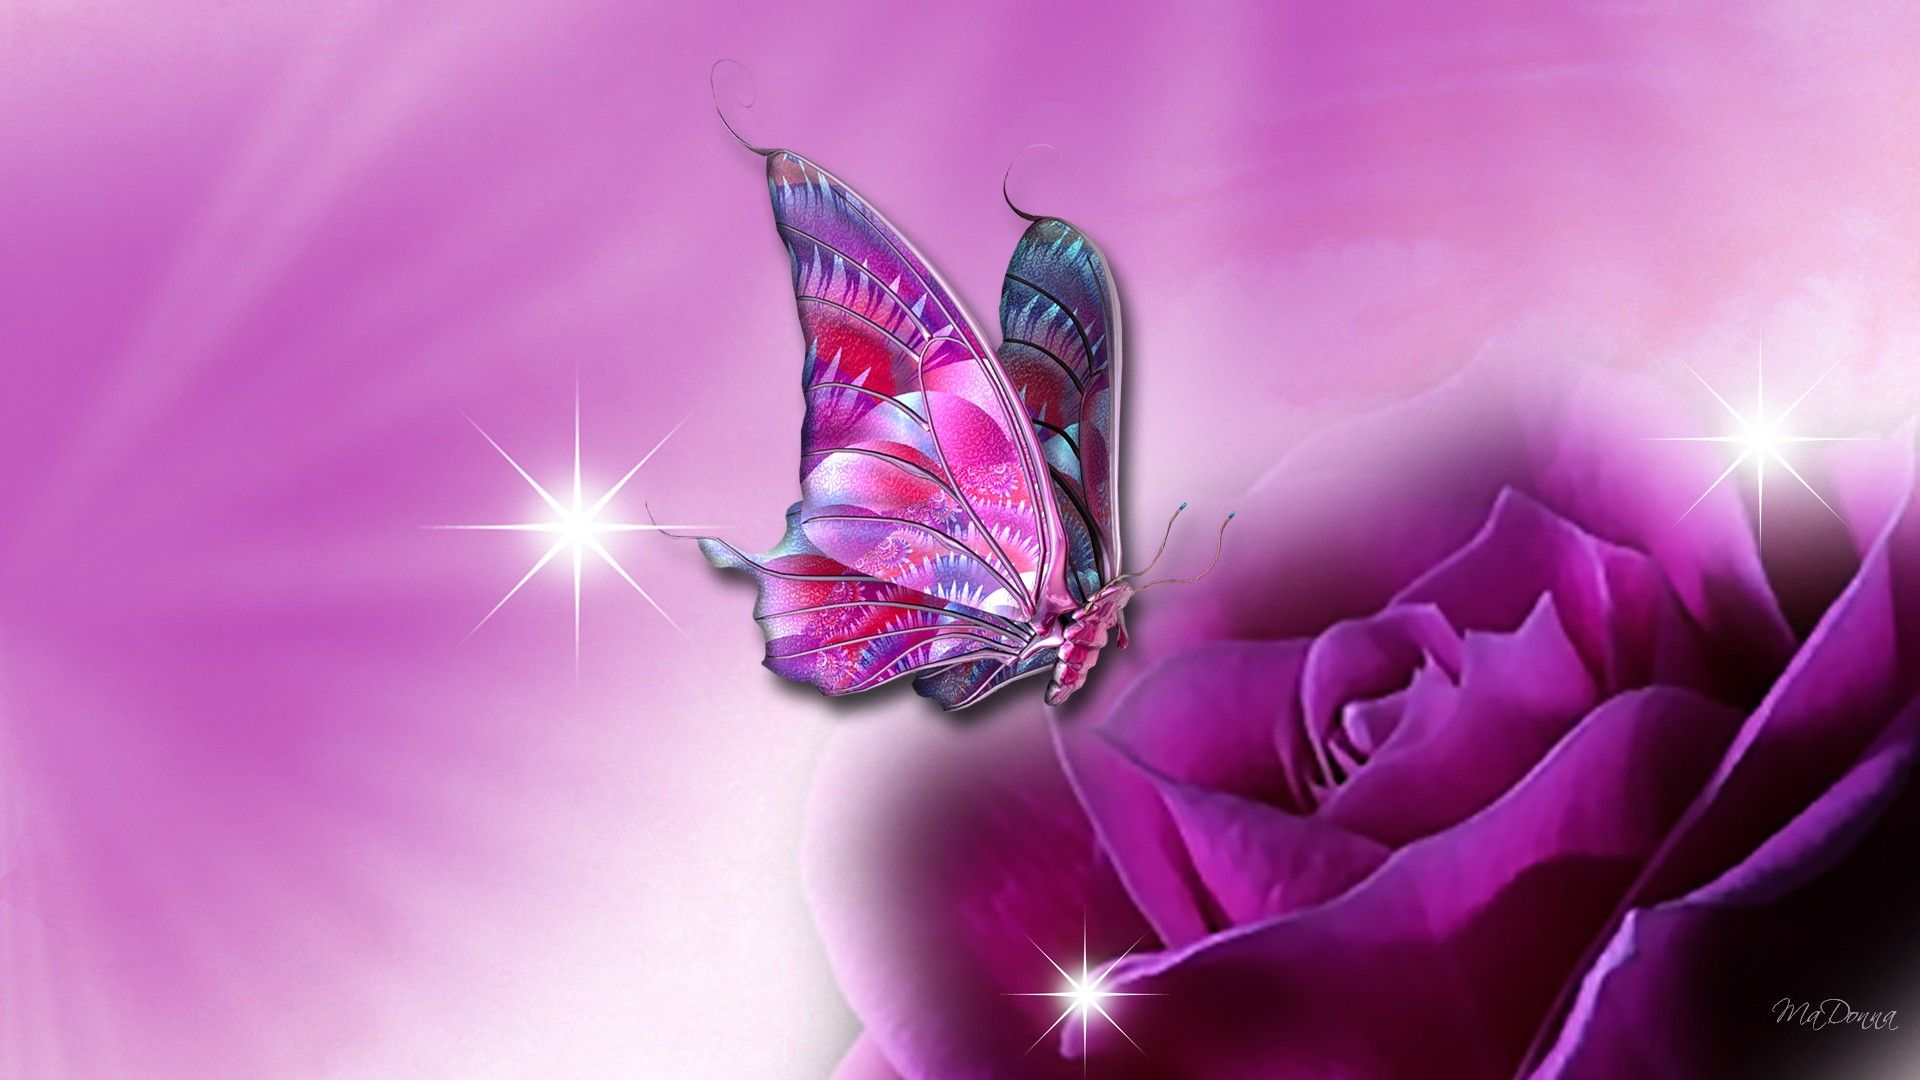 3d Butterfly Live Wallpaper Hd For Android 3d Butterfly Live Wallpaper Hd 1 0 Butterfly Wallpaper Blue Butterfly Wallpaper Butterfly Live